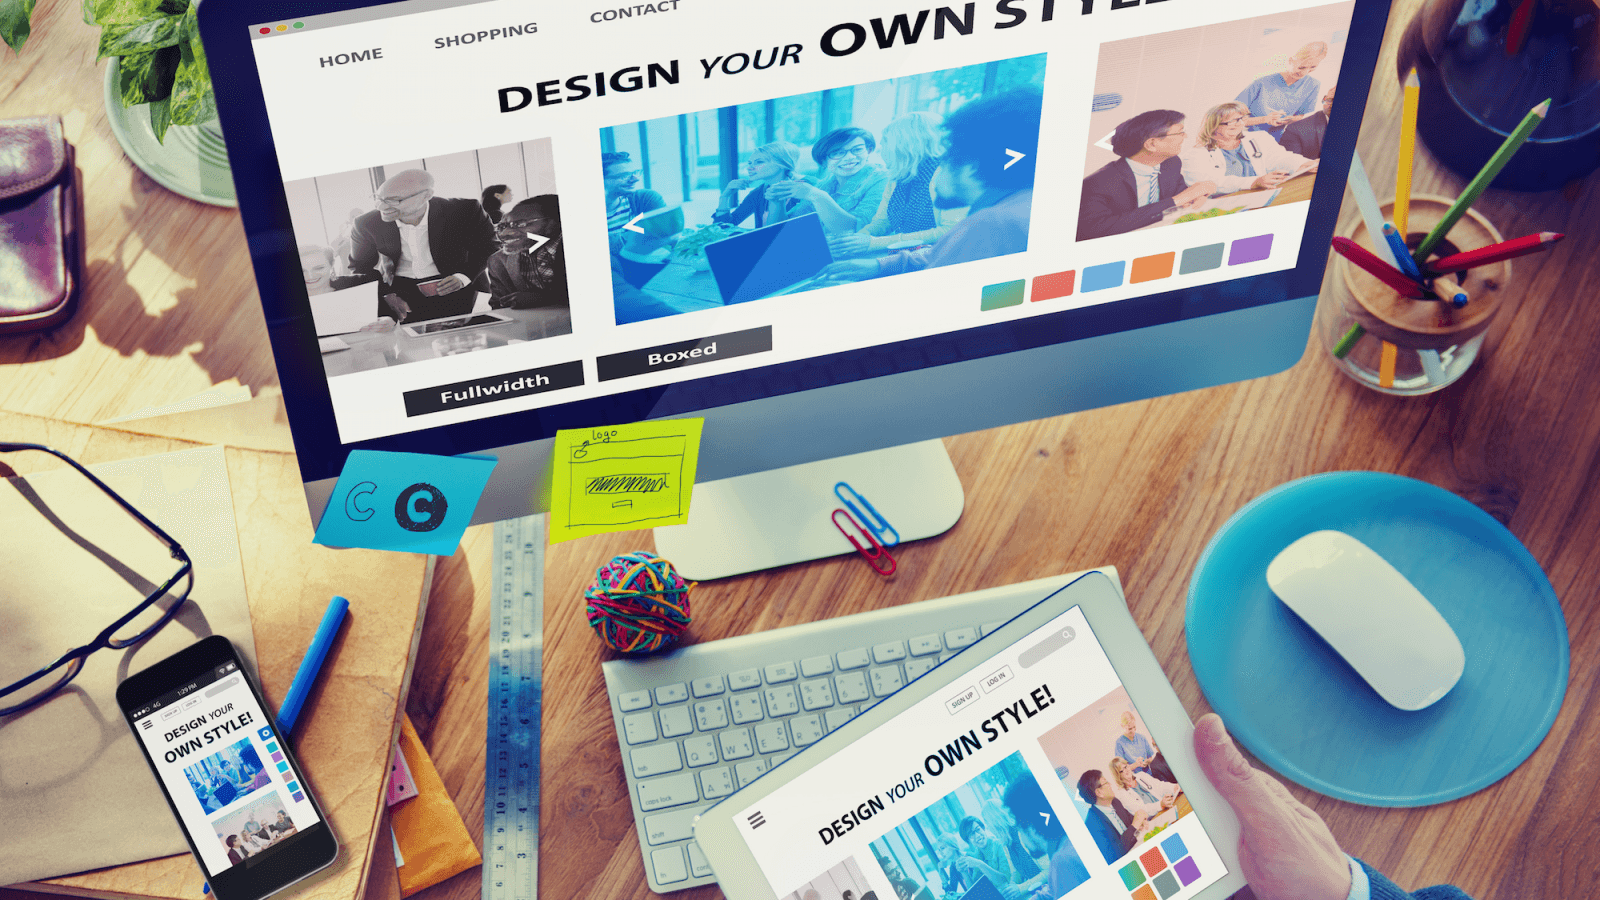 User Friendly Website - How Effective Website Design Can Help Small Businesses Navigate COVID-19